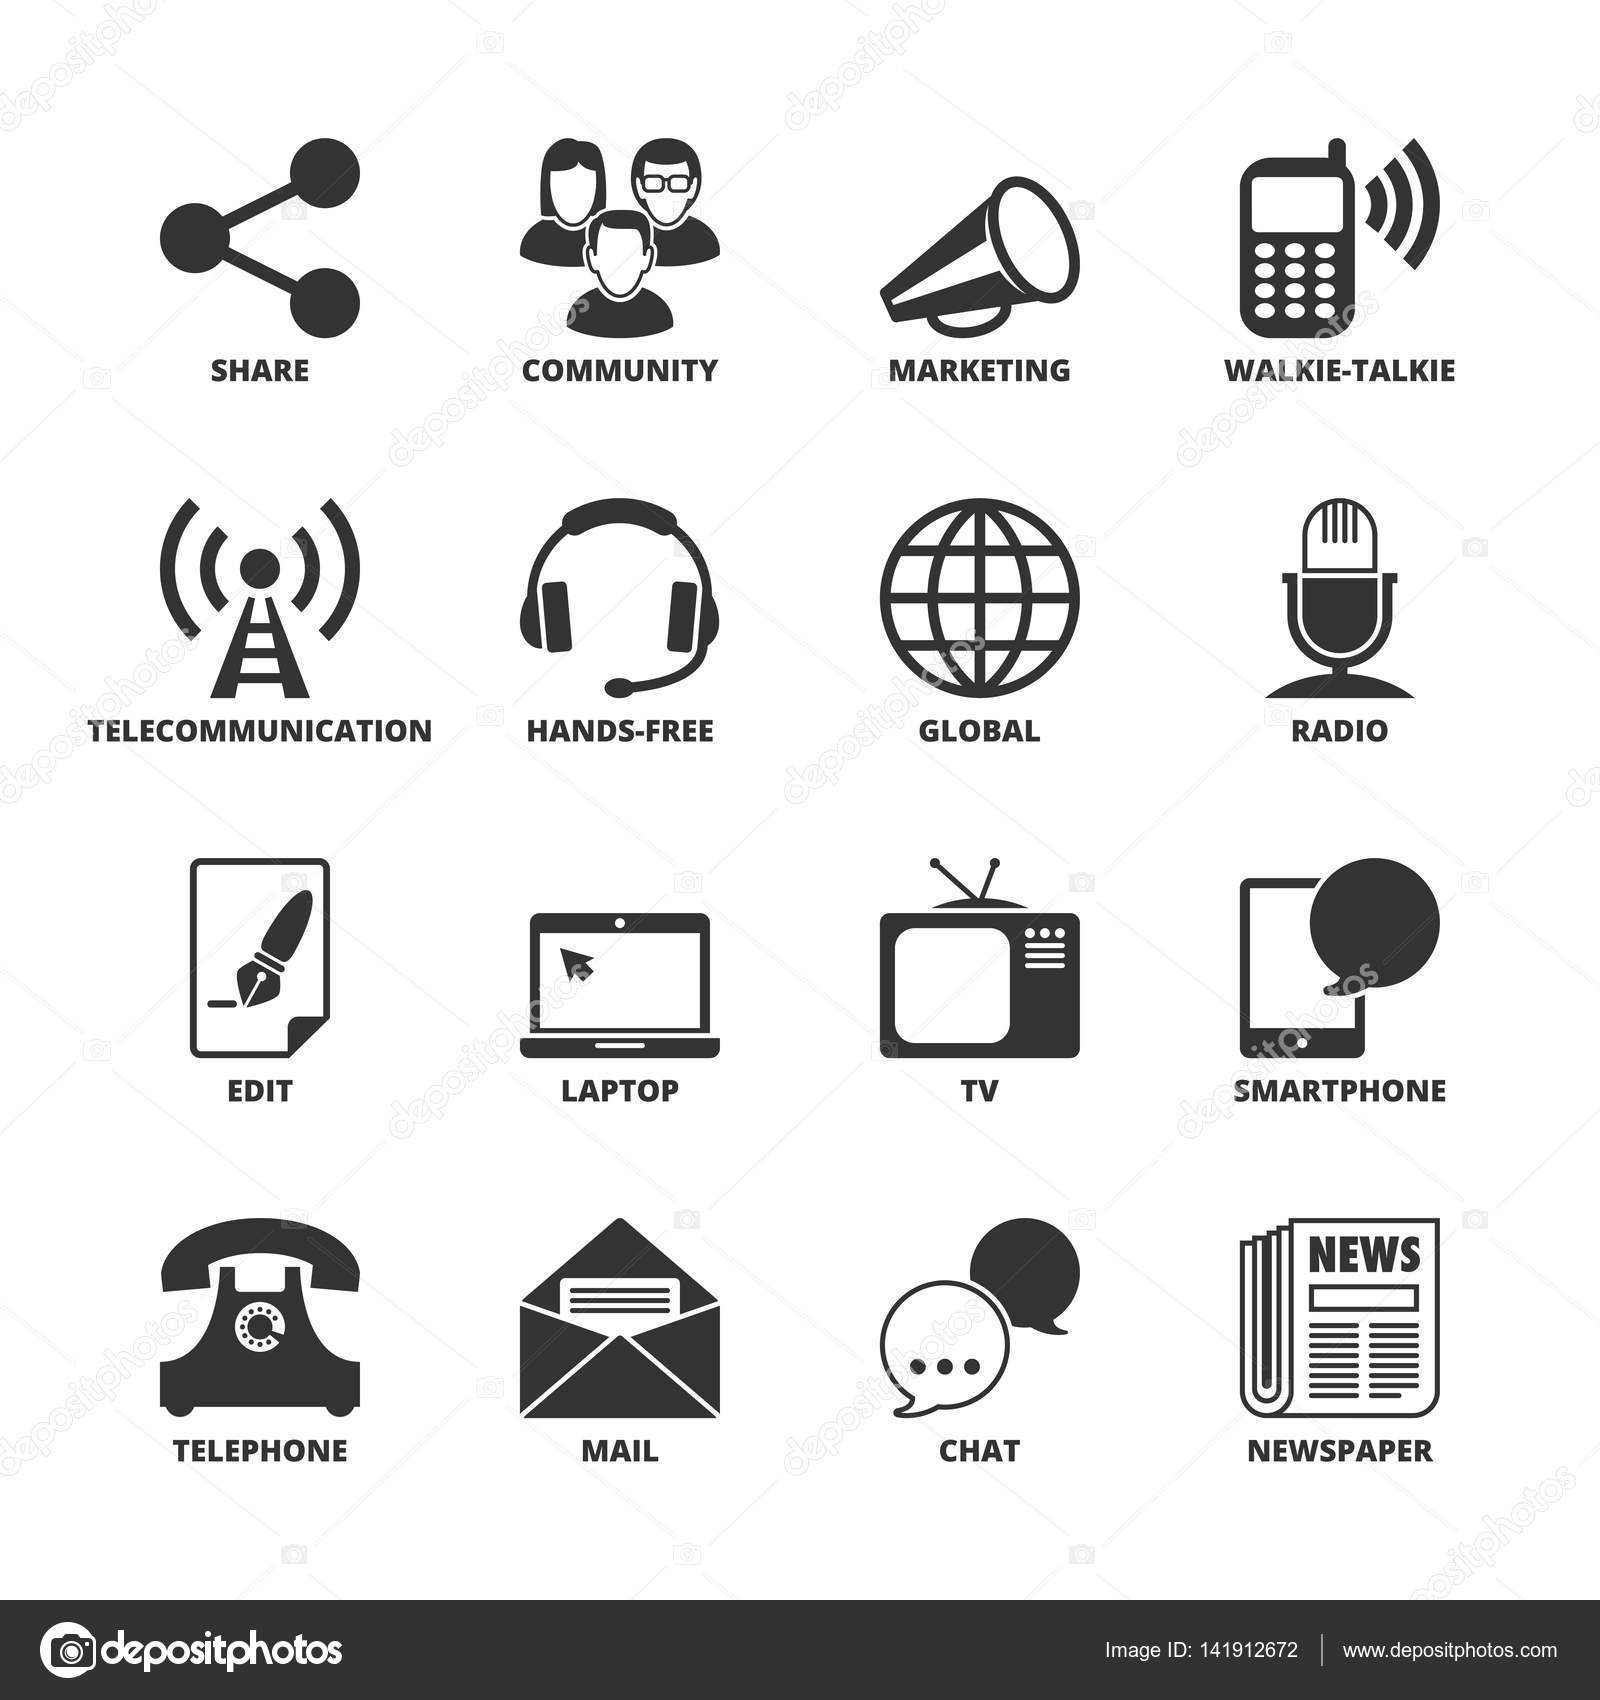 symbols technology communication illustration spiral 1600 depositphotos